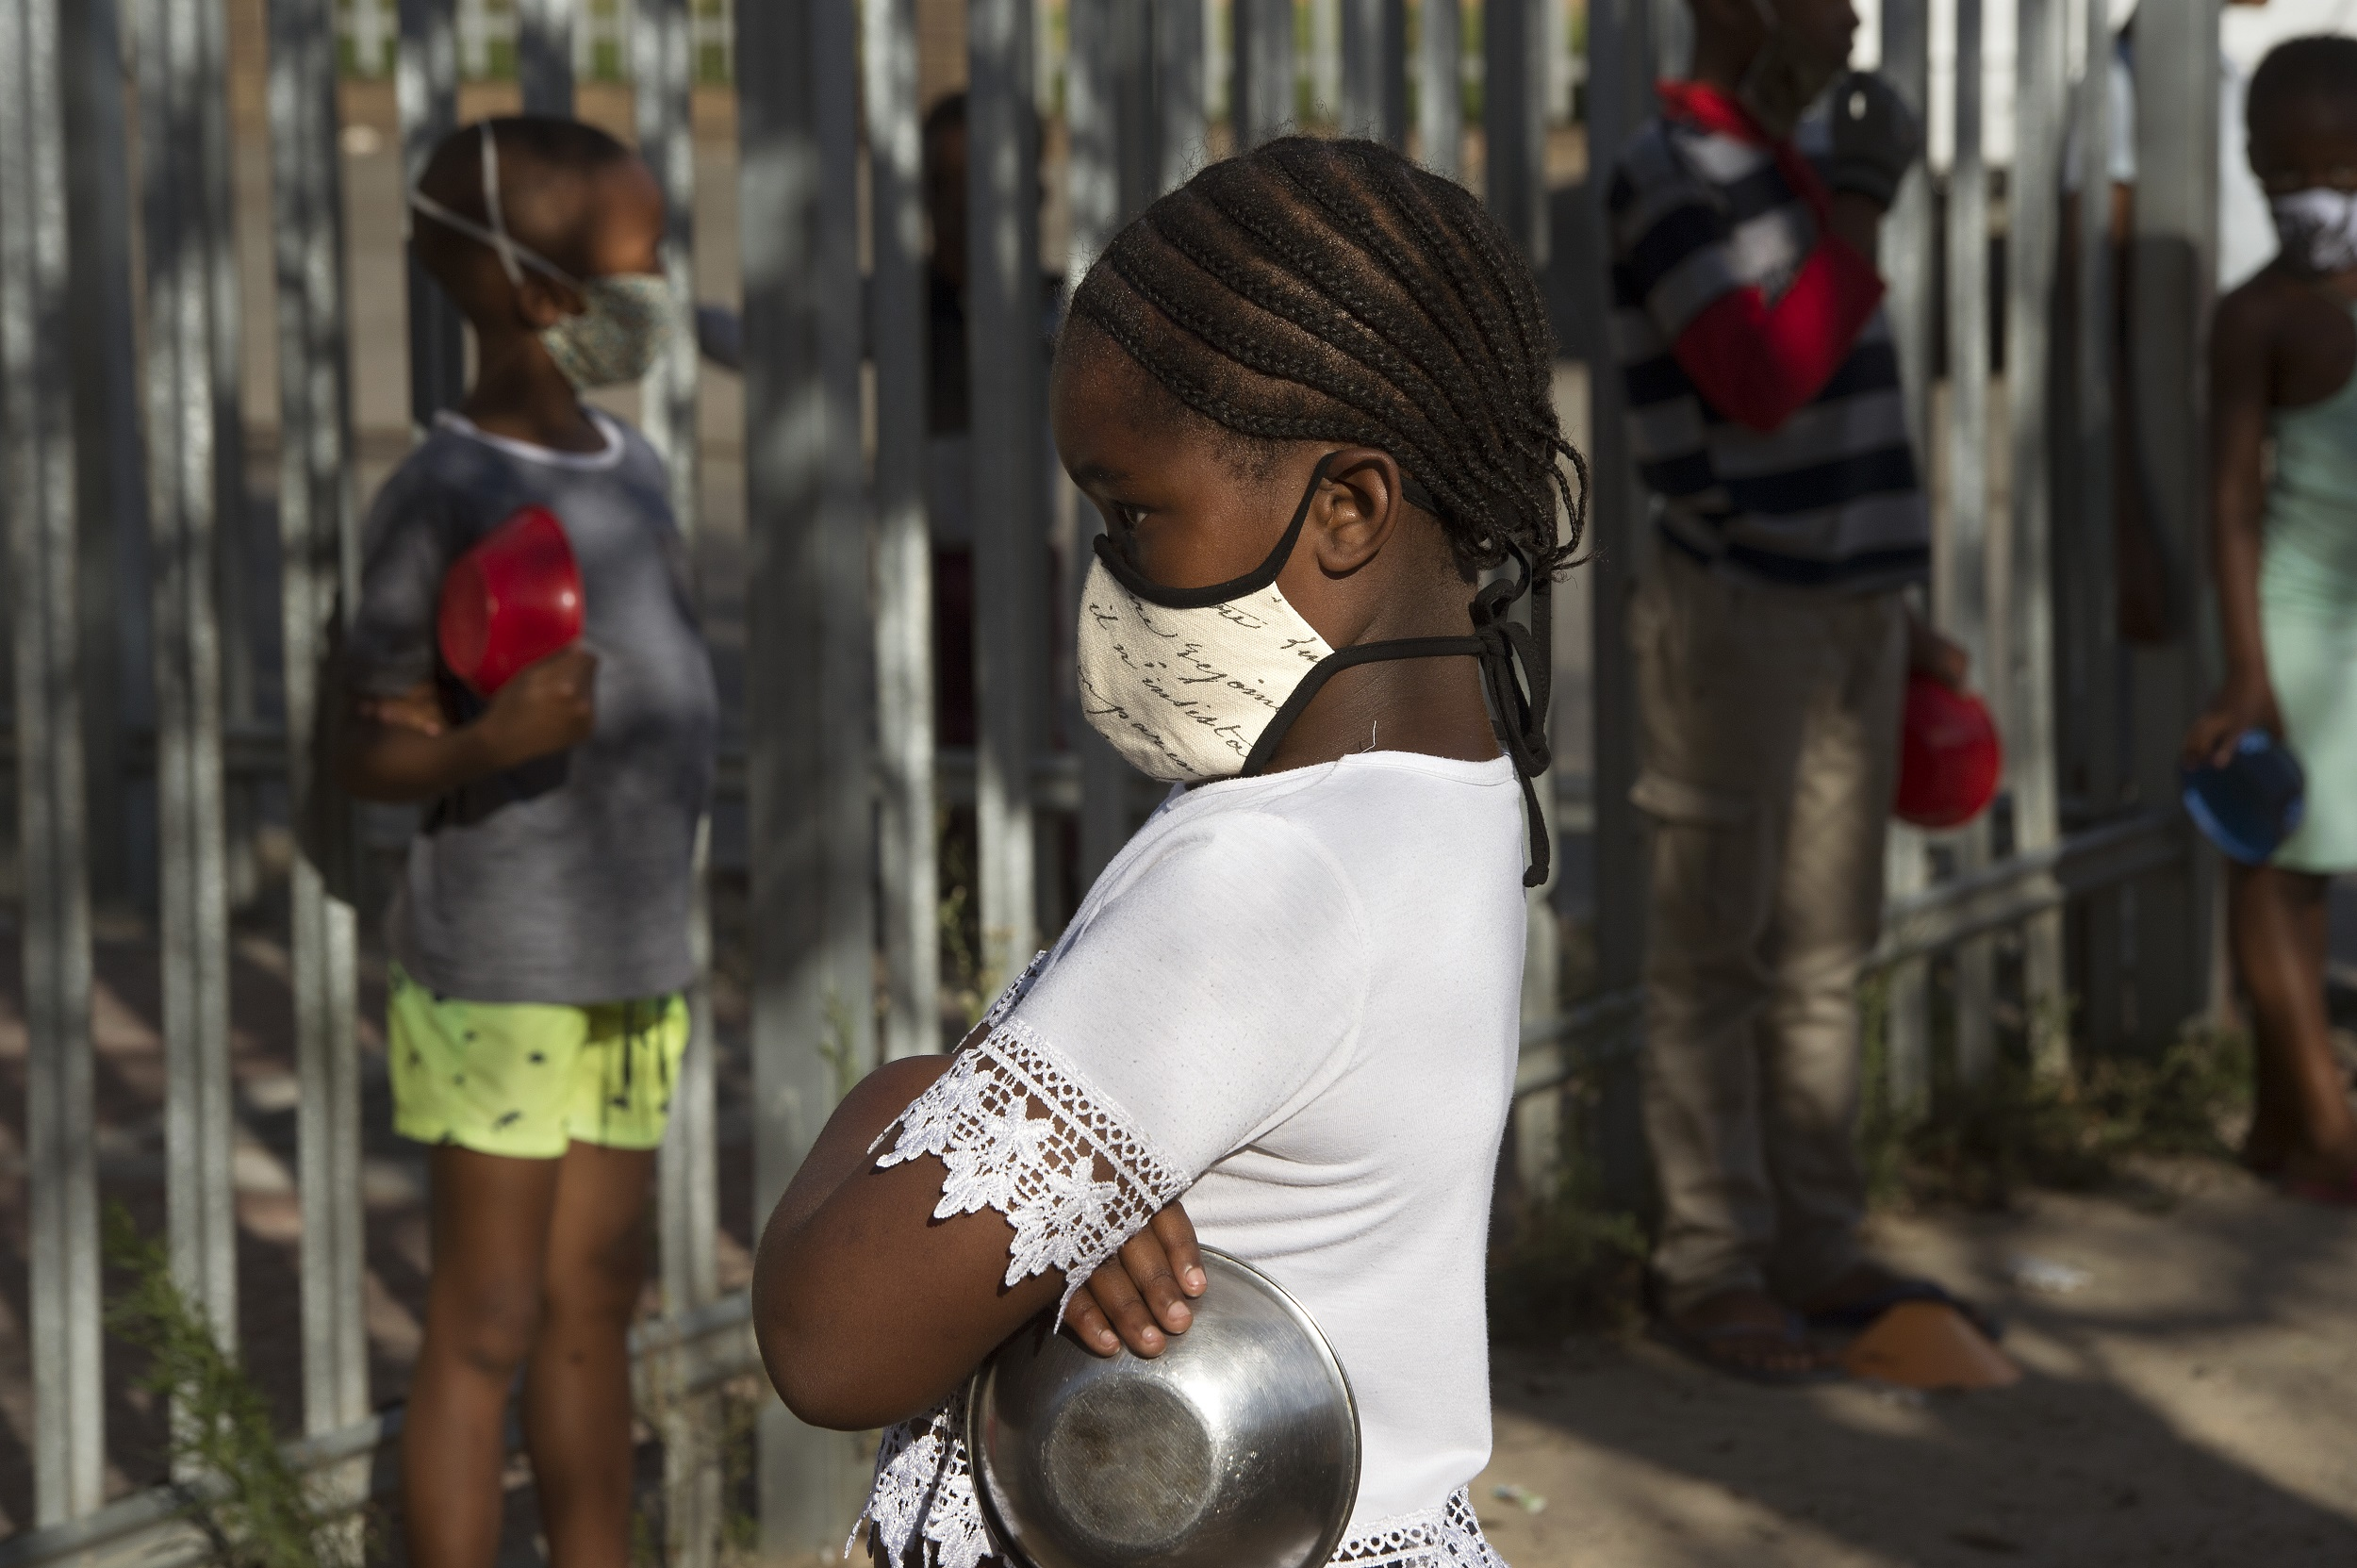 Children wait in lines at a crèche in Langa, near Cape Town to receive a meal which is part of a project to feed people made vulnerable under the lockdown.